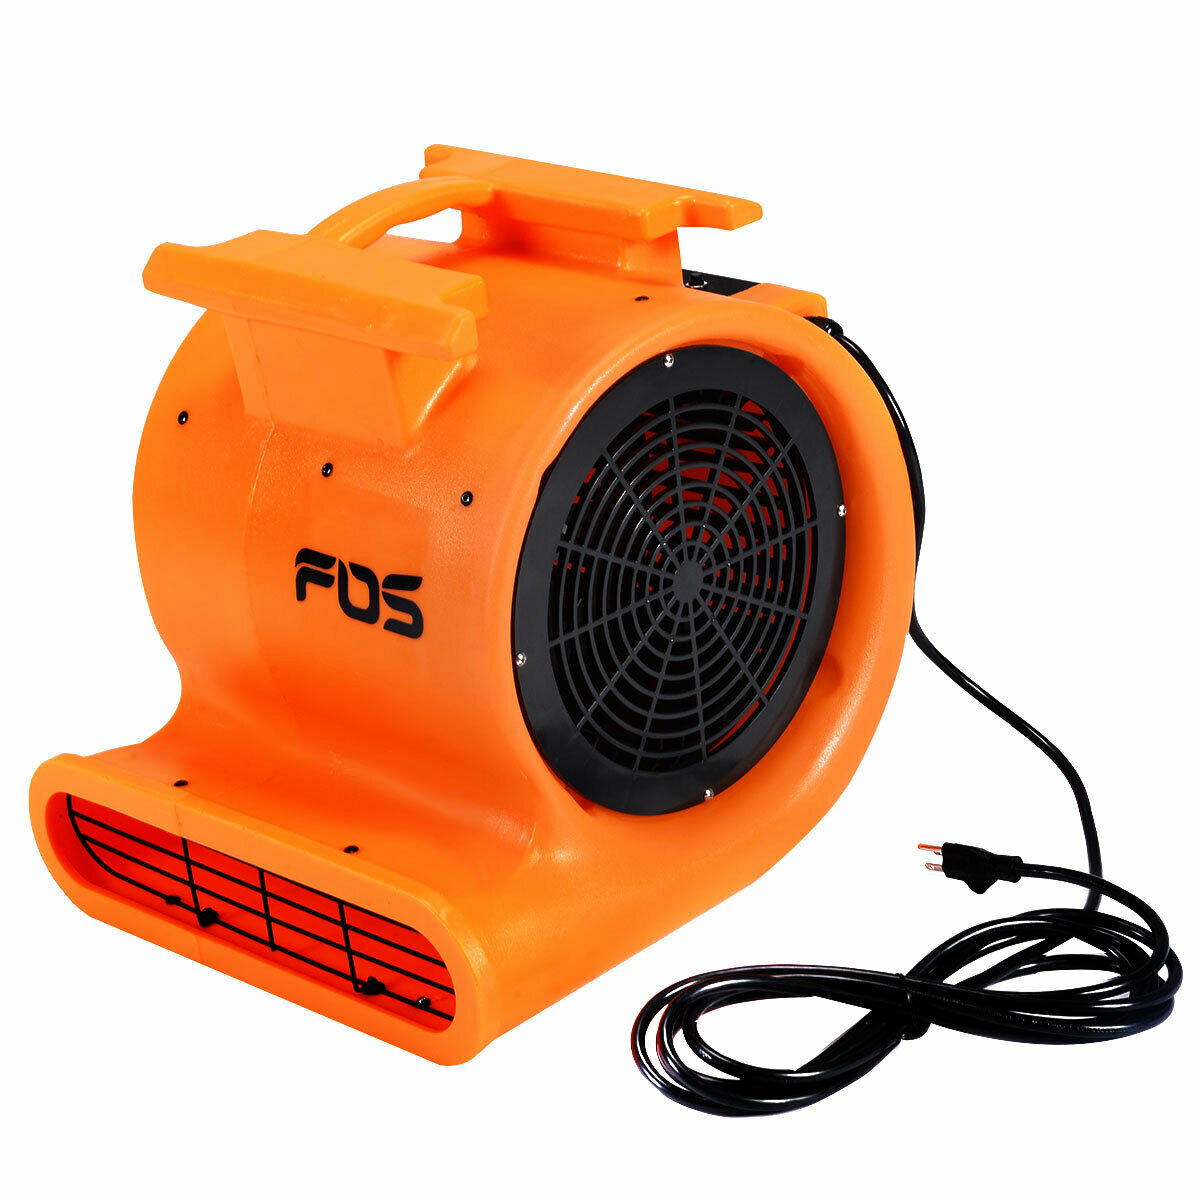 Vacmaster AM201 1101 Professional Air Mover Floor//Carpet//Wall Dryer Cooling fan